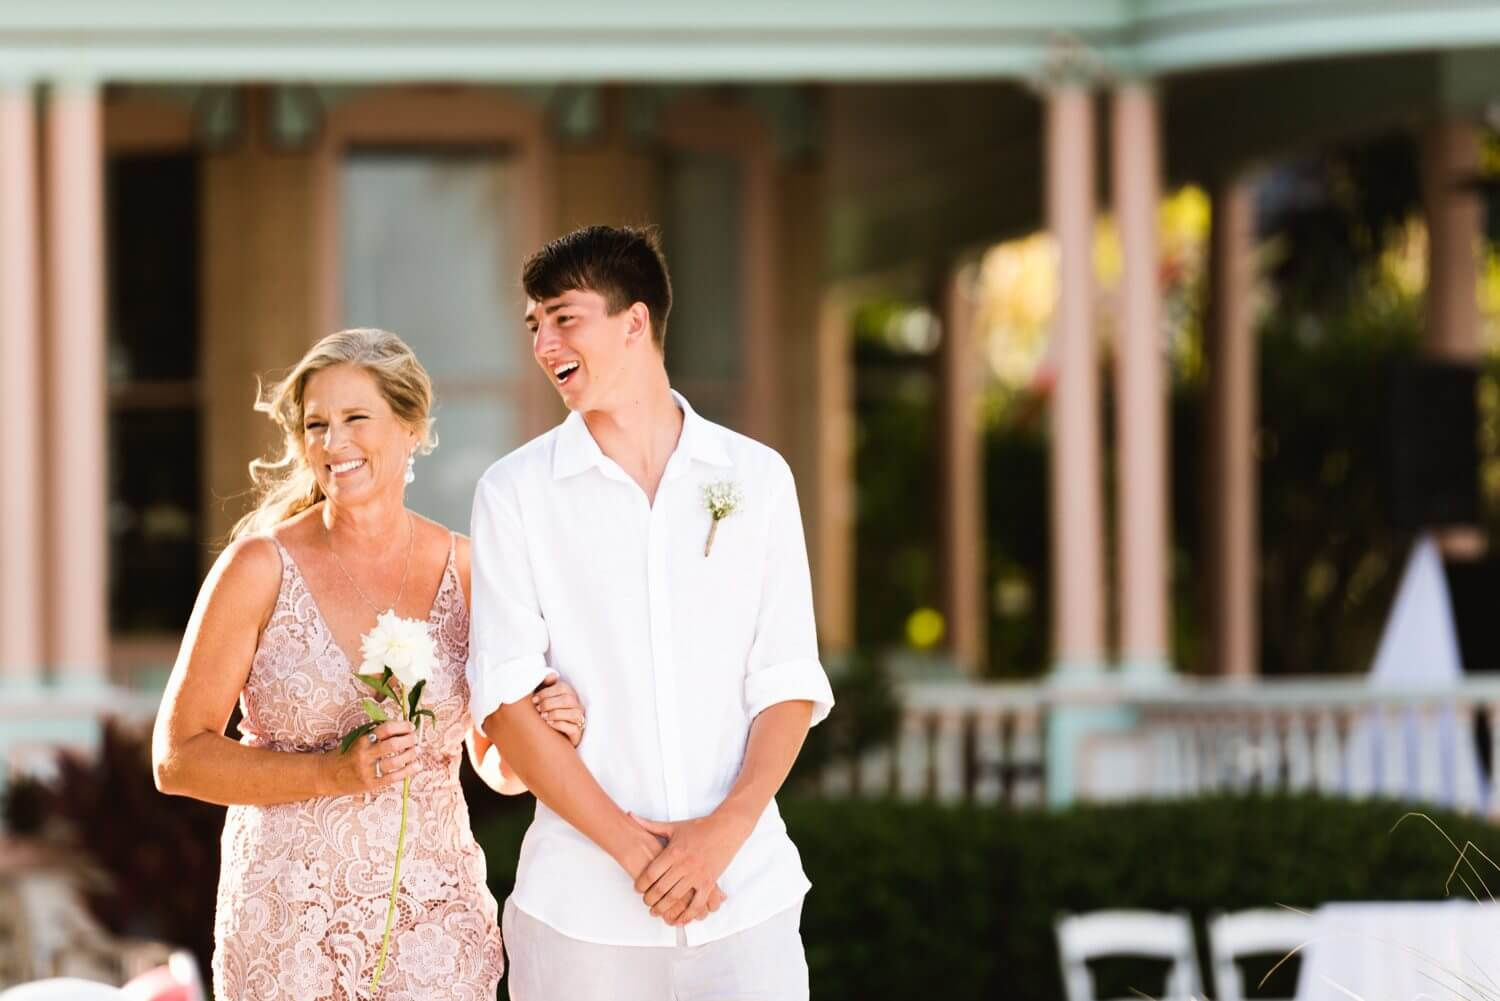 Freas Photography Southernmost House Wedding 86 - Boho Styled Key West Wedding at the Southernmost House in Key West, Florida